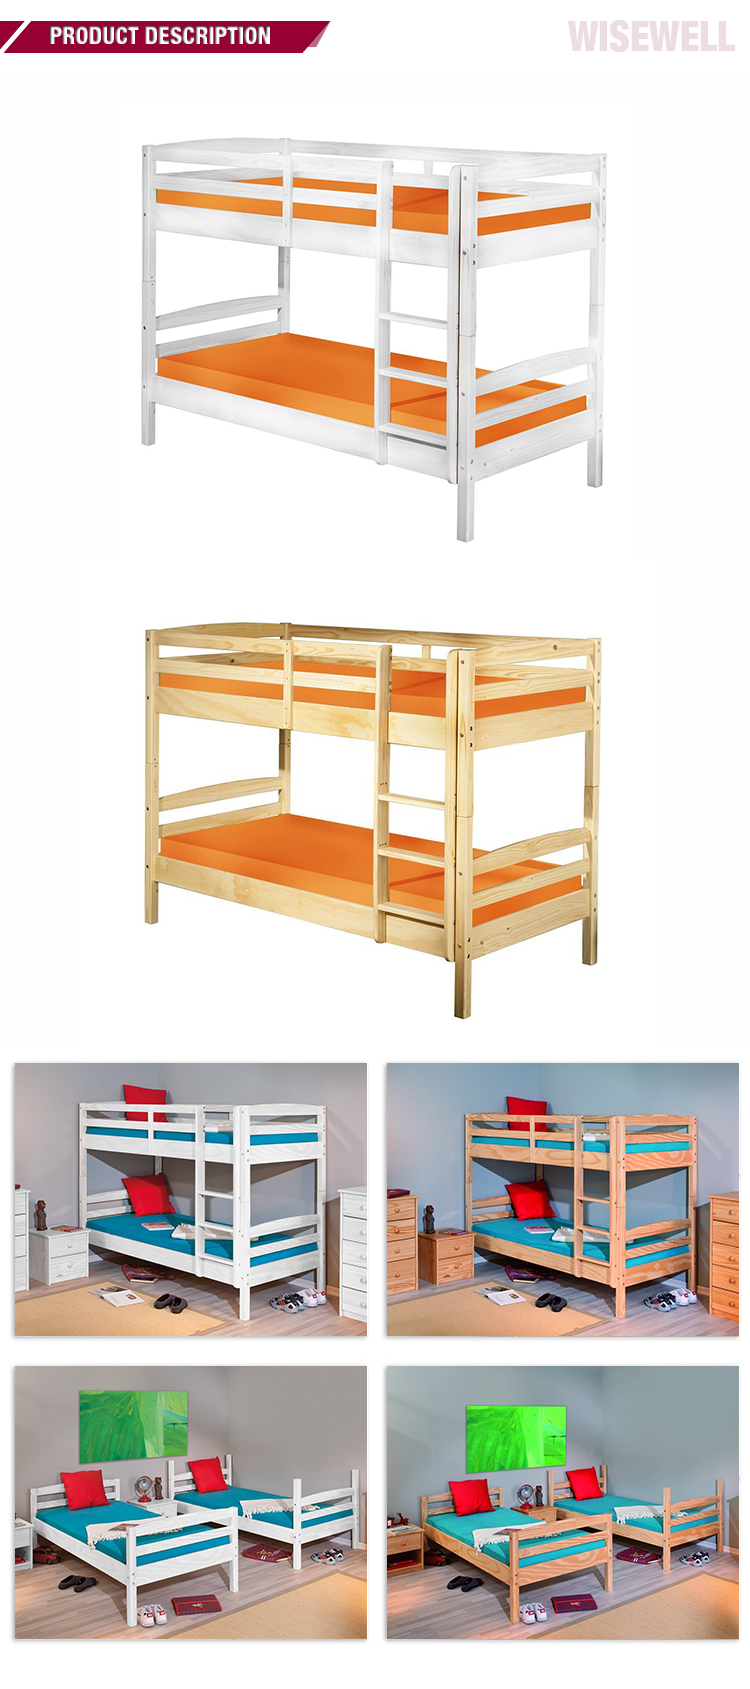 W-B-3530 wood double  frame designs bunk beds